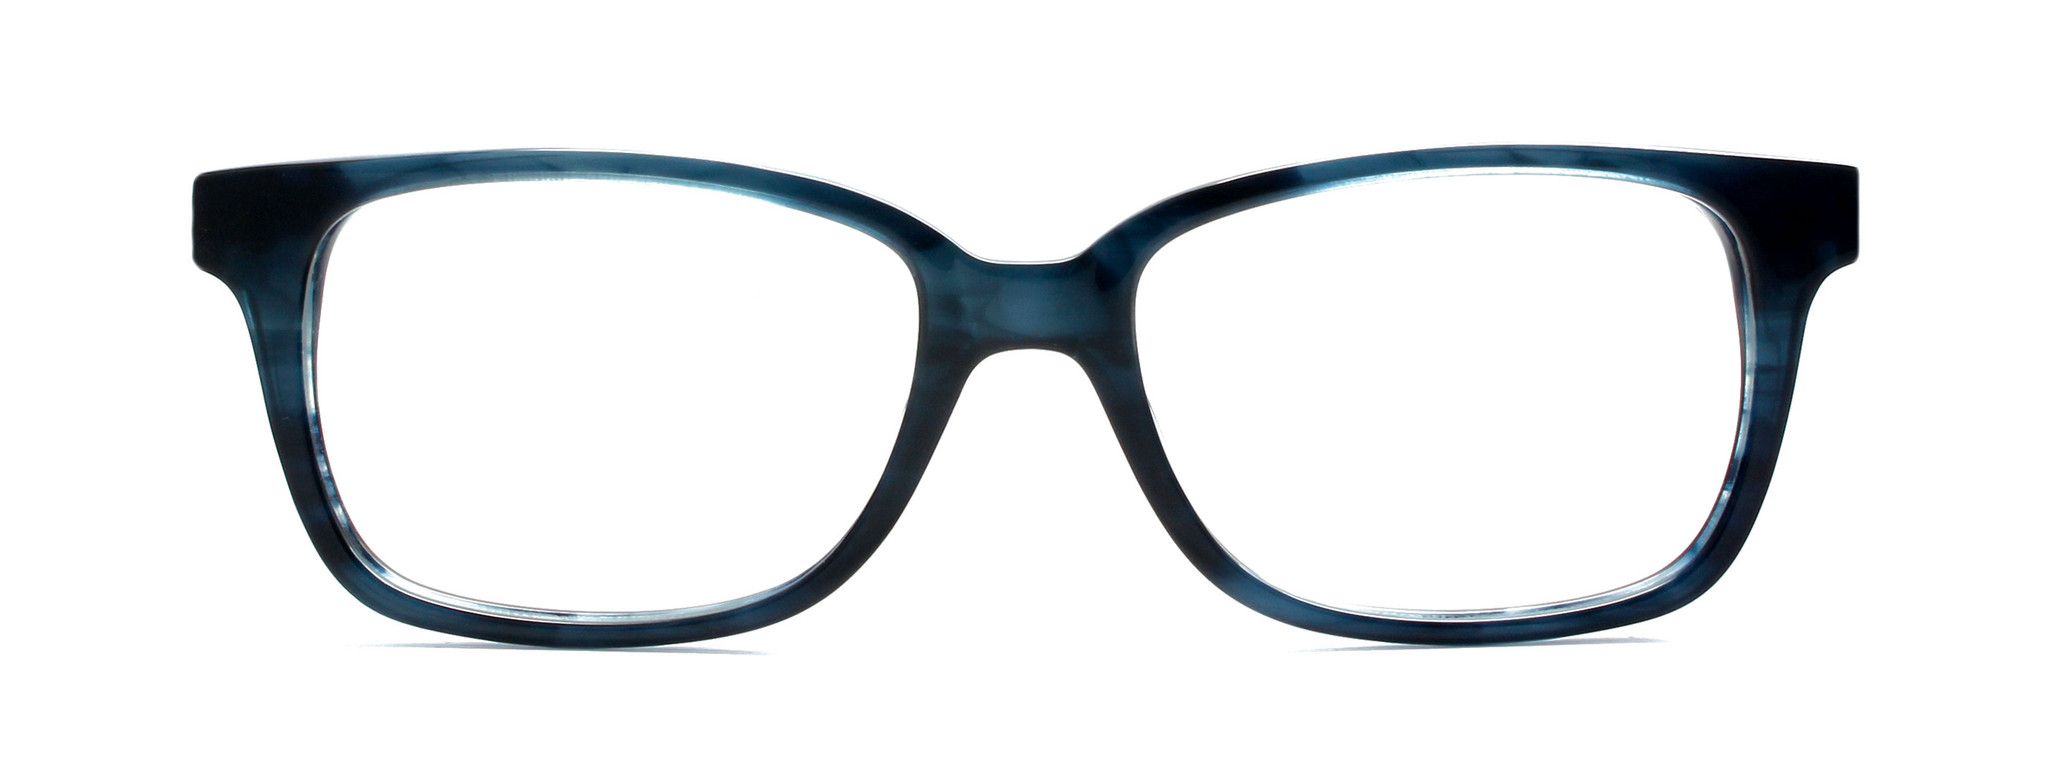 Eyeglass Frames Berkeley Ca : Glasses for USD165 Focus by Discerning Eye Iowa City, IA